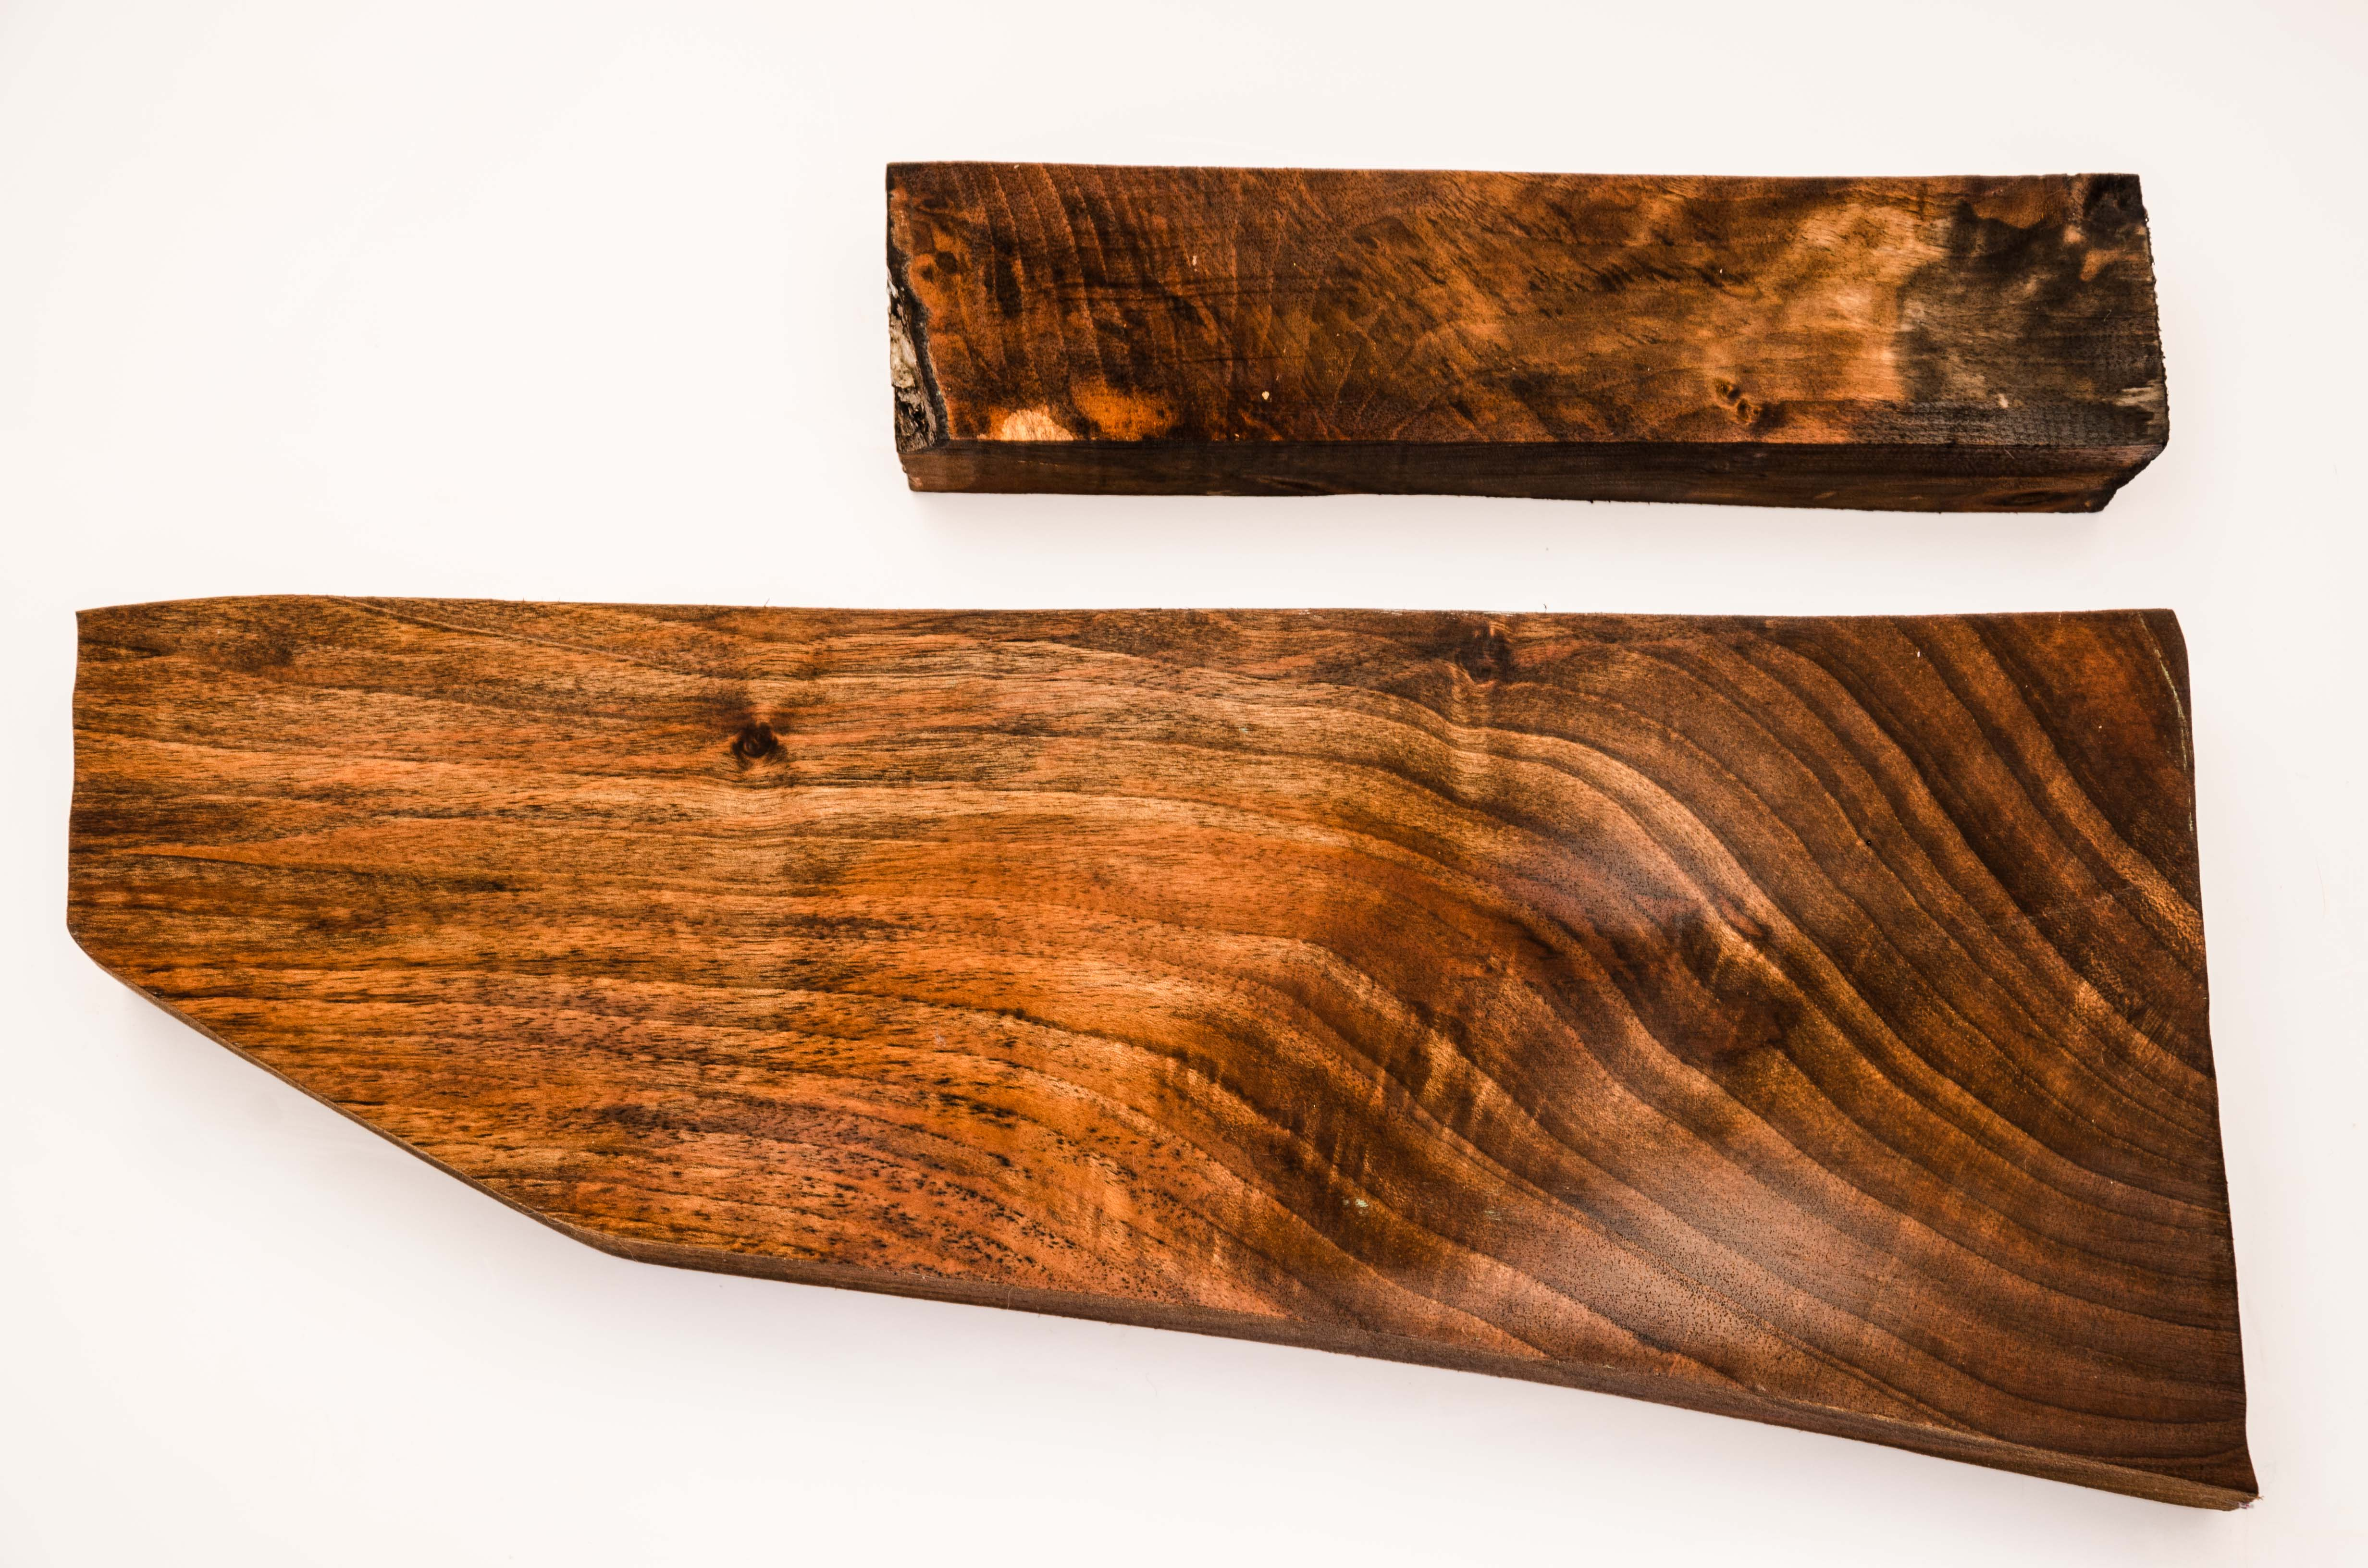 walnut_stock_blanks_for_guns_and_rifles-0520